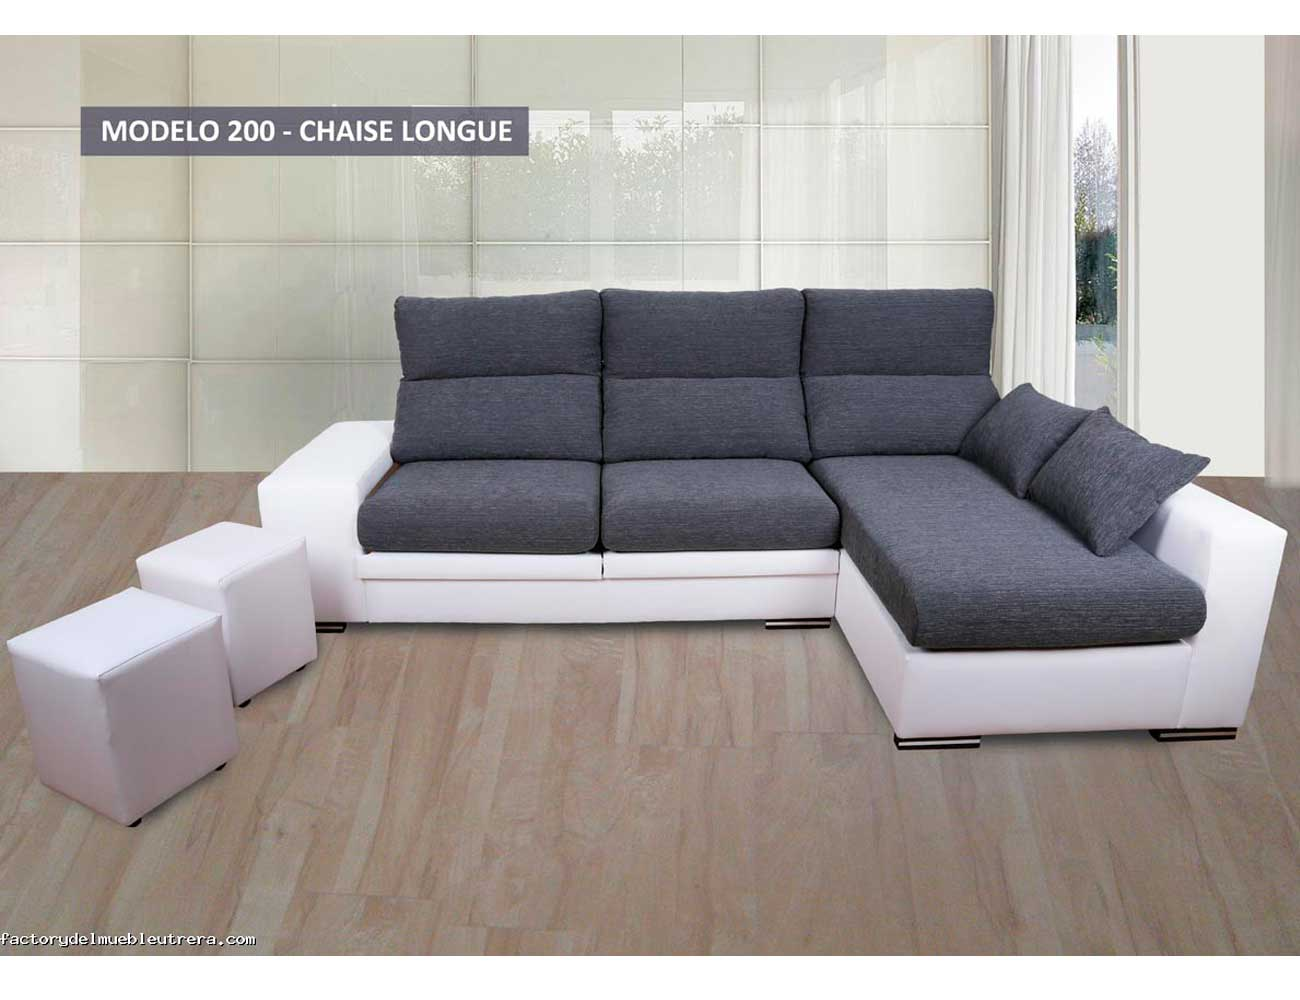 Sof chaiselongue con opci n de arc n 7164 factory del for Sofa bueno y barato